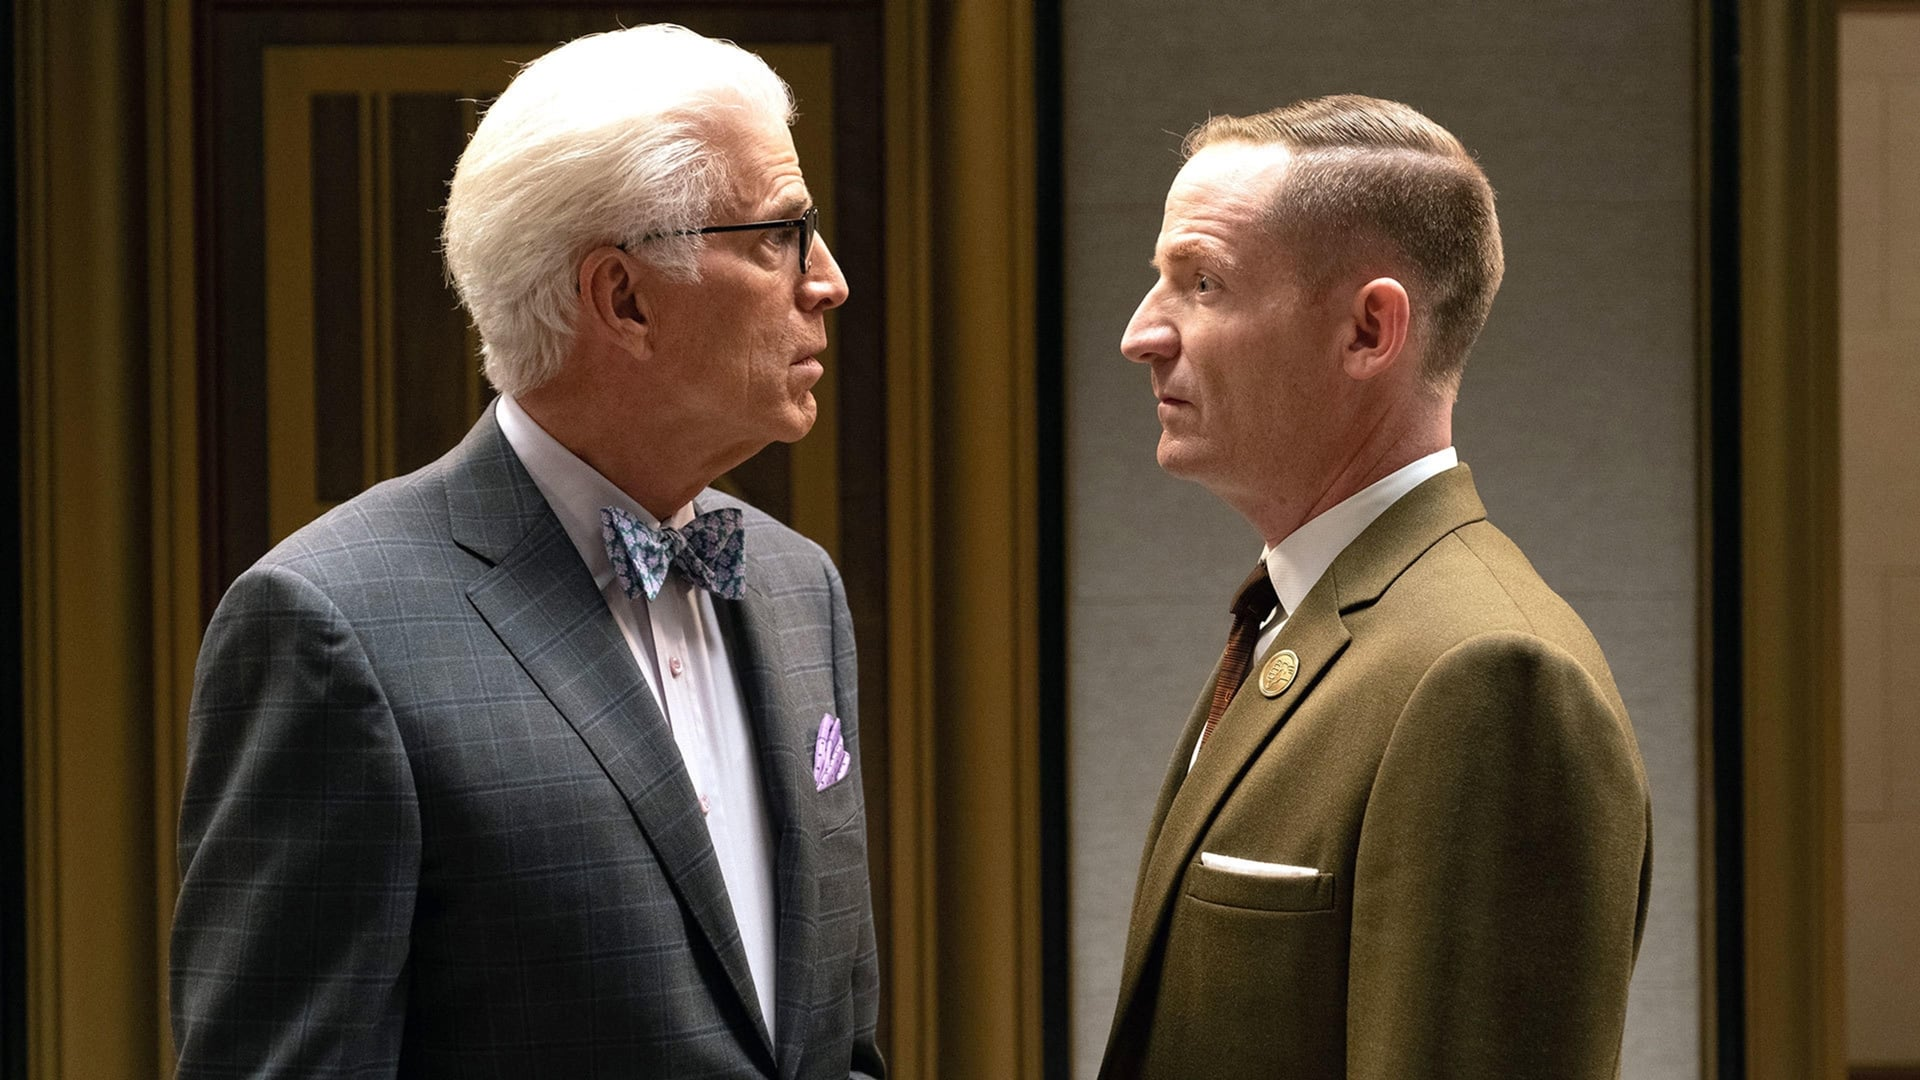 The Good Place • S04E08